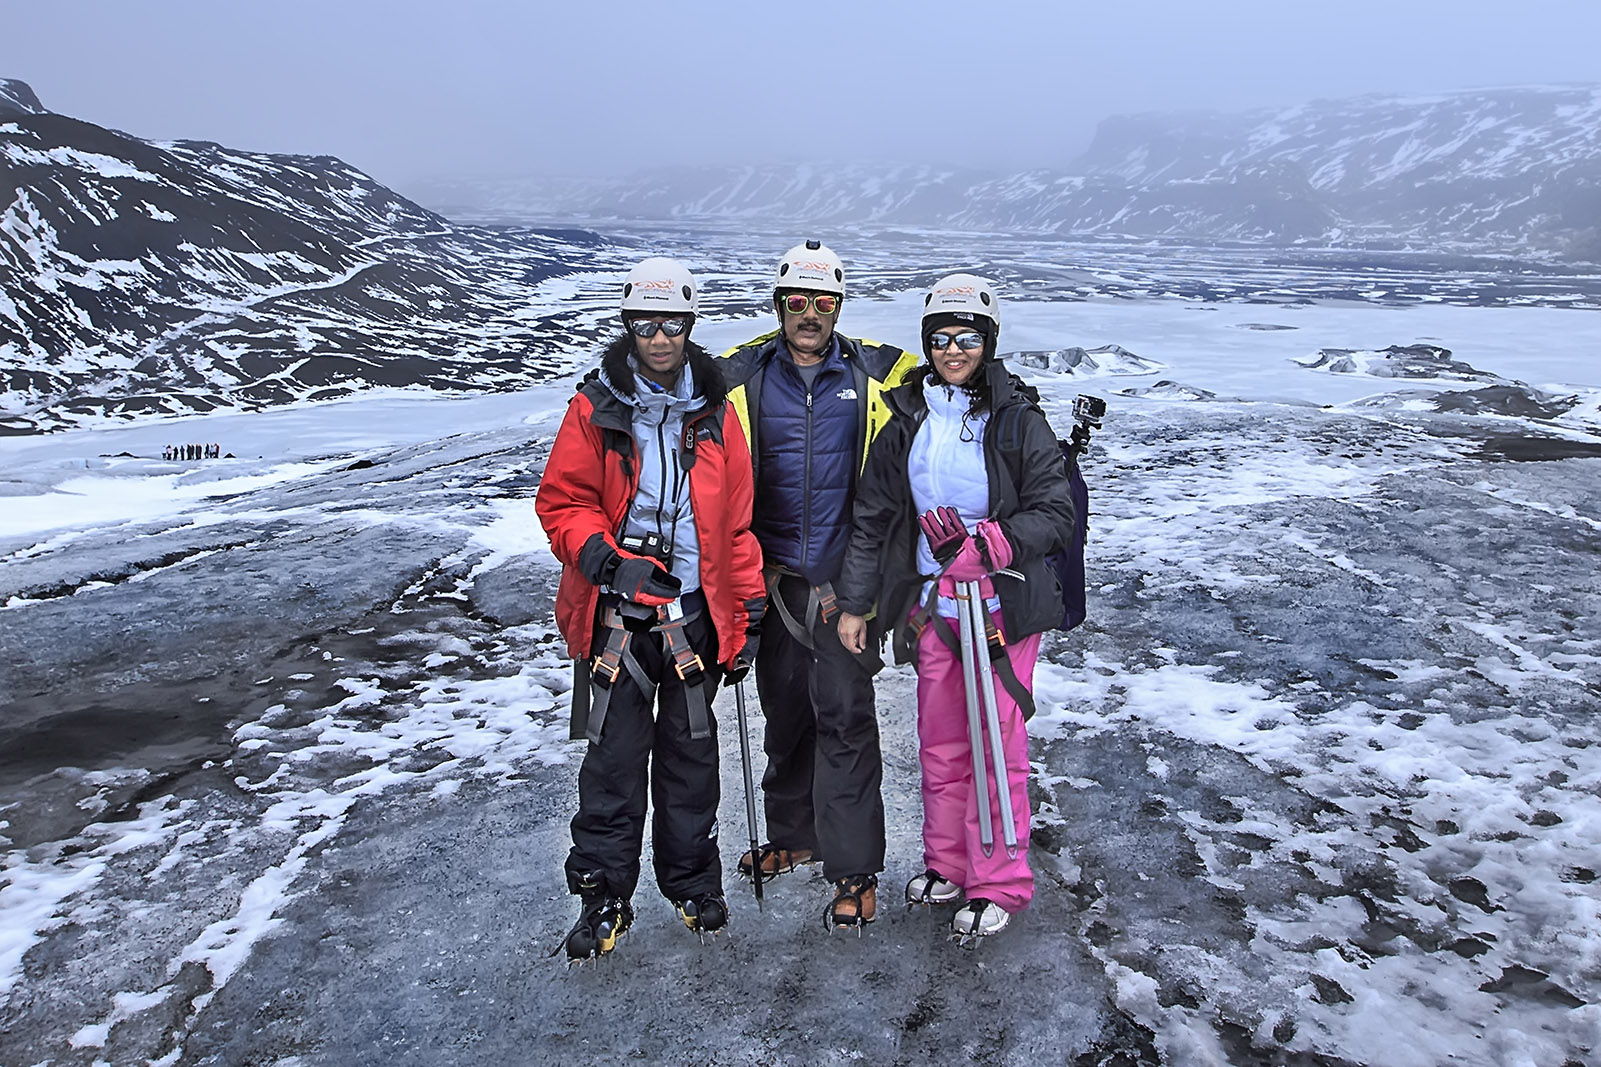 WITH  NITHIN  PREMJITH  &  SUJA  PREMJITH  AT THE TOP  OF  THE GLACIER,  ICELAND